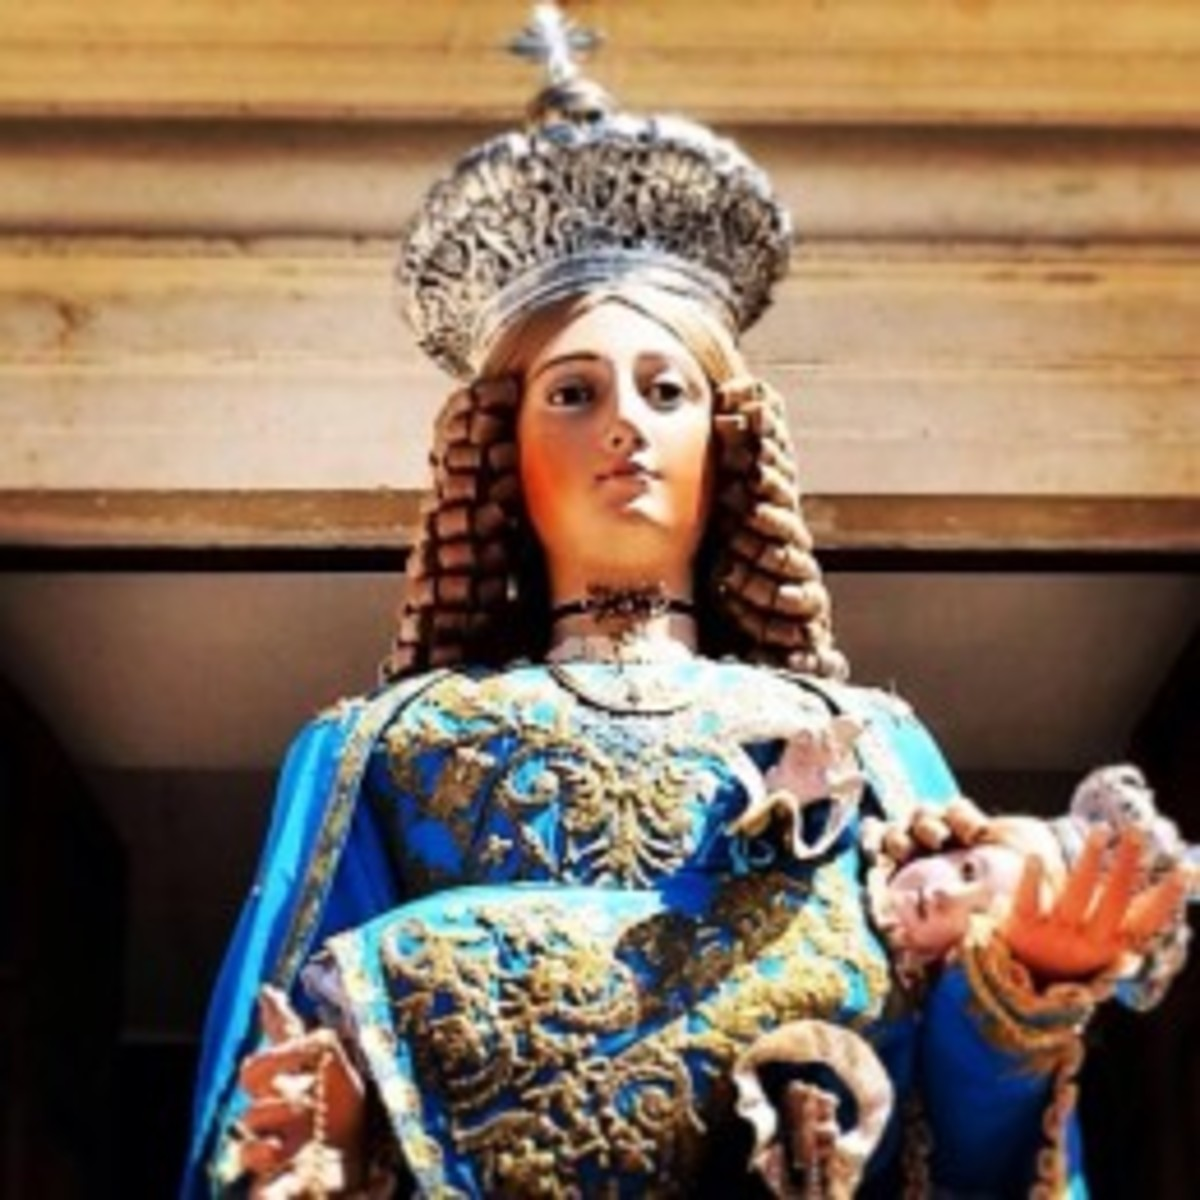 This is the statue of the Madonna of Genzano di Lucania, which is taken around the town in a procession. The feast lasts three days, all the town takes part at this religious feast in a way or another. So, the people have a good time.